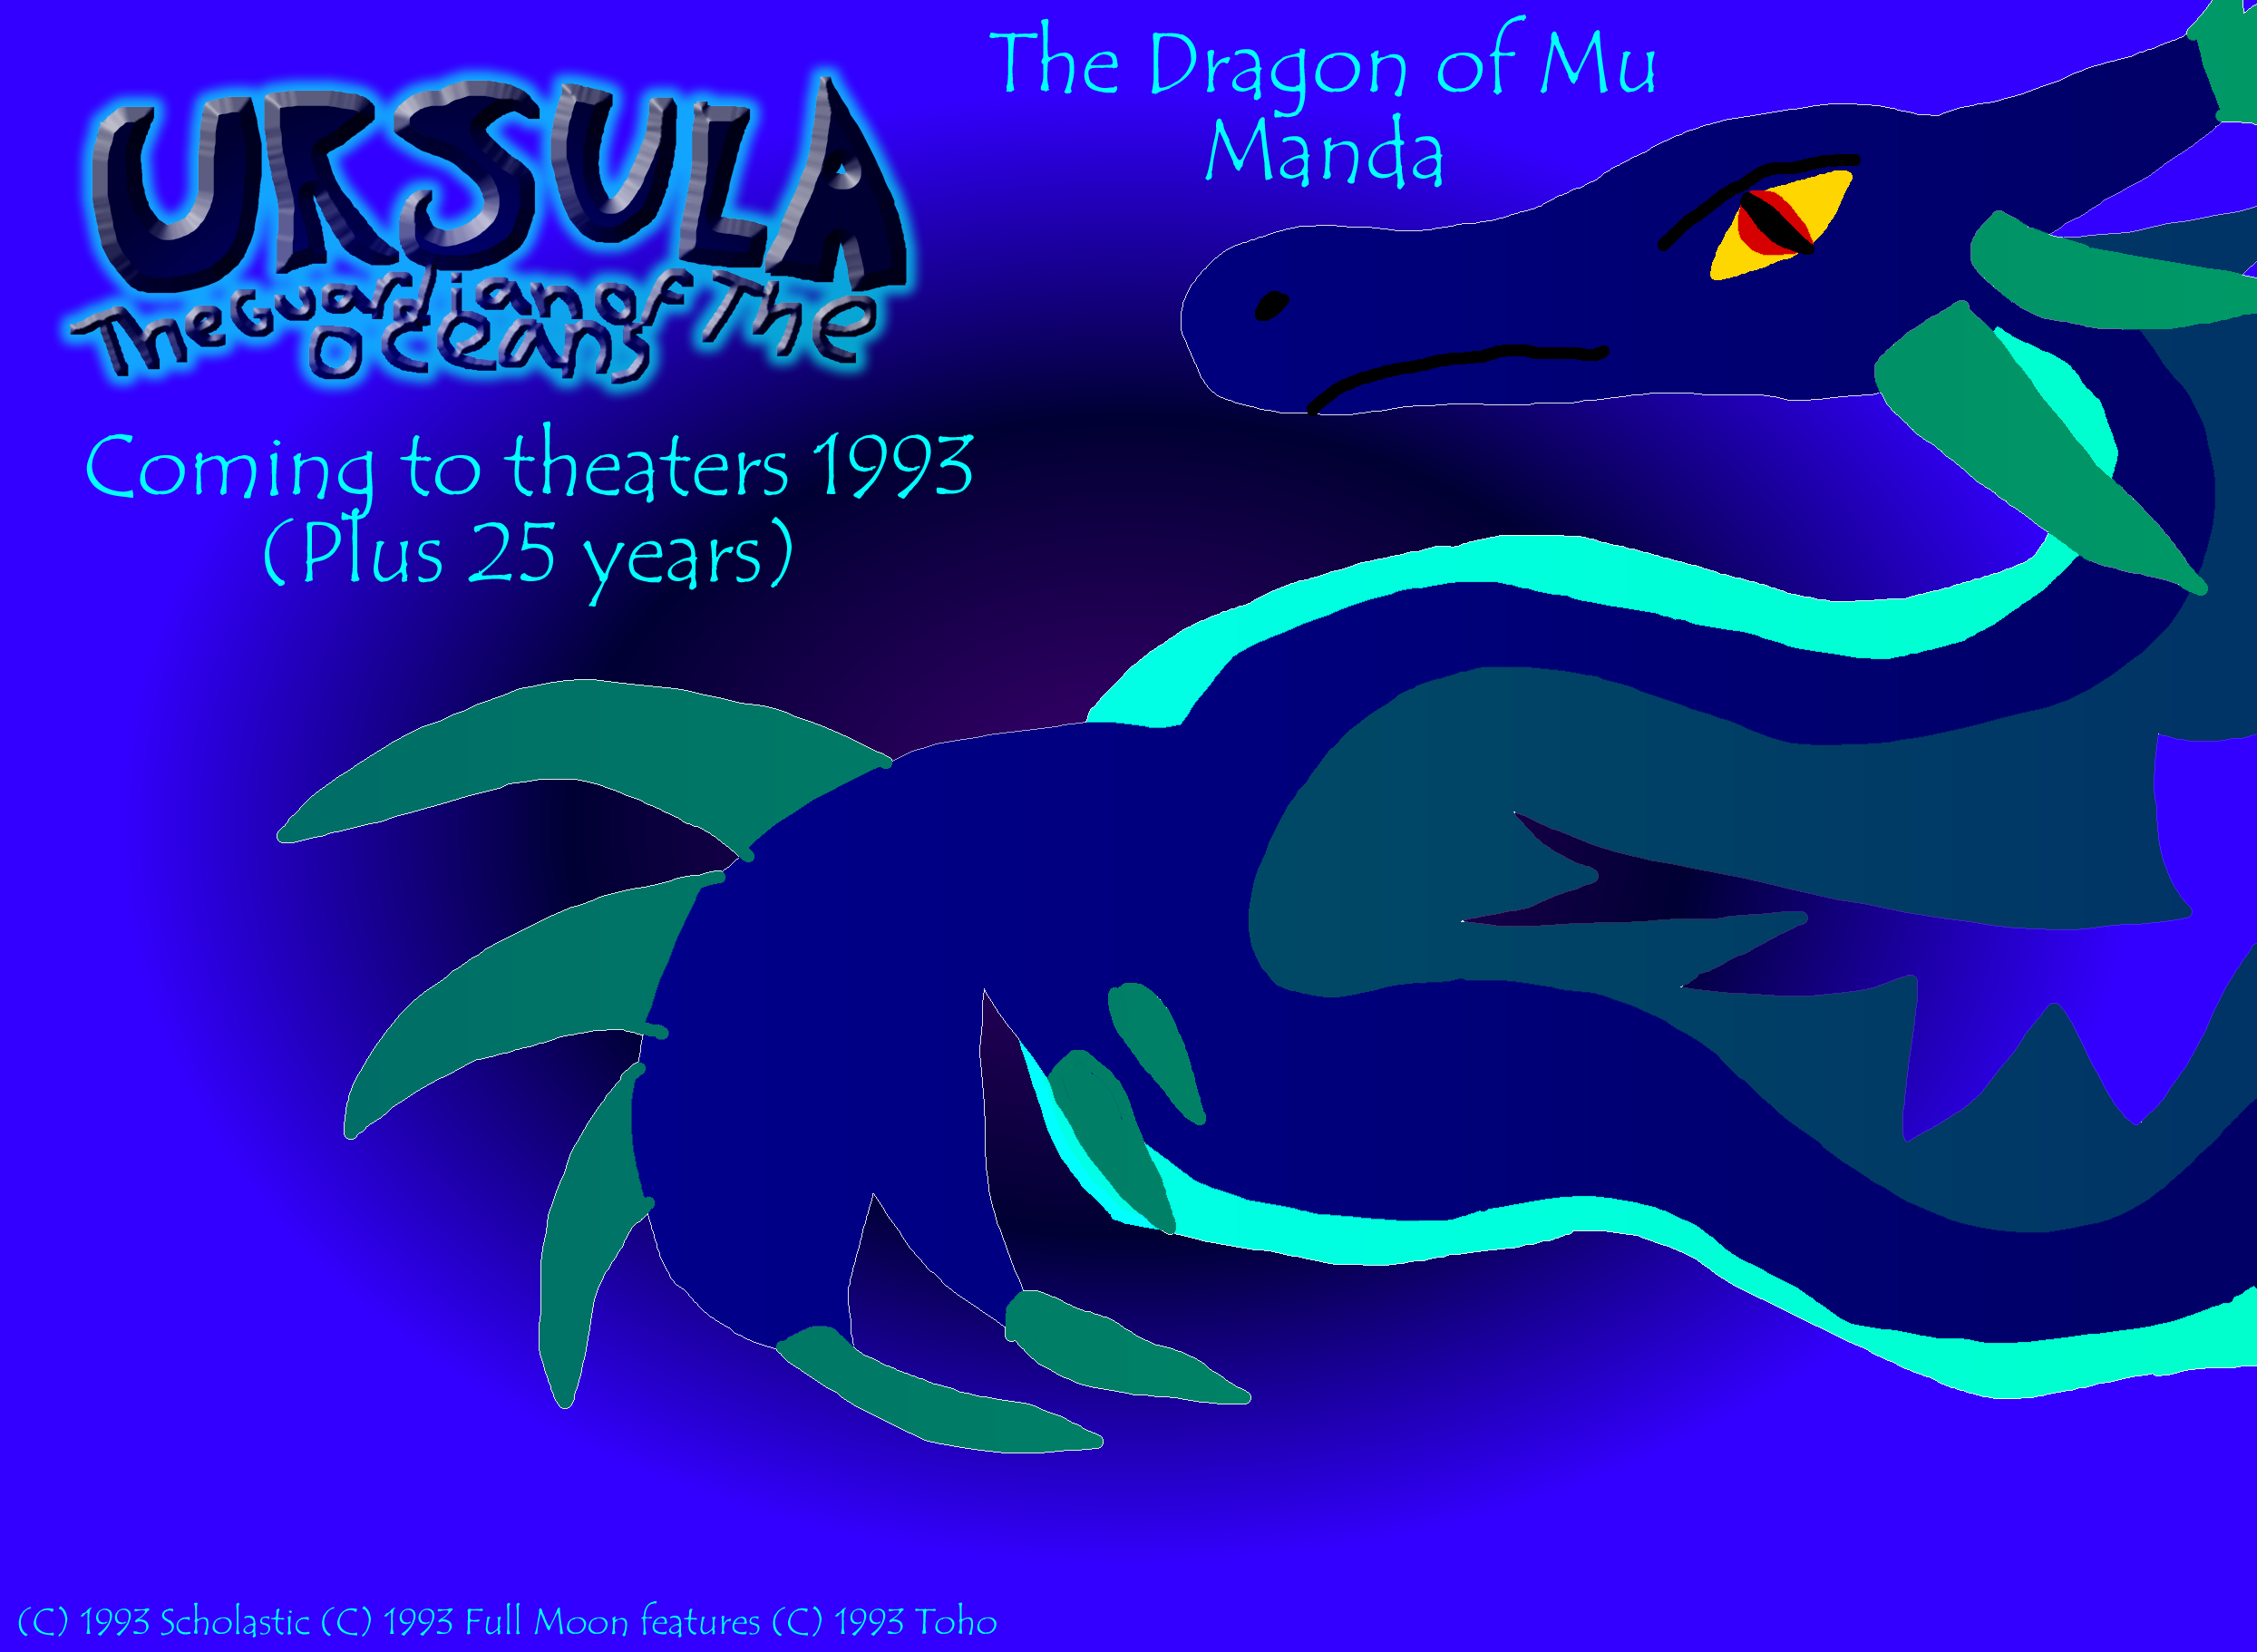 Dragon of Mu Manda (1993)